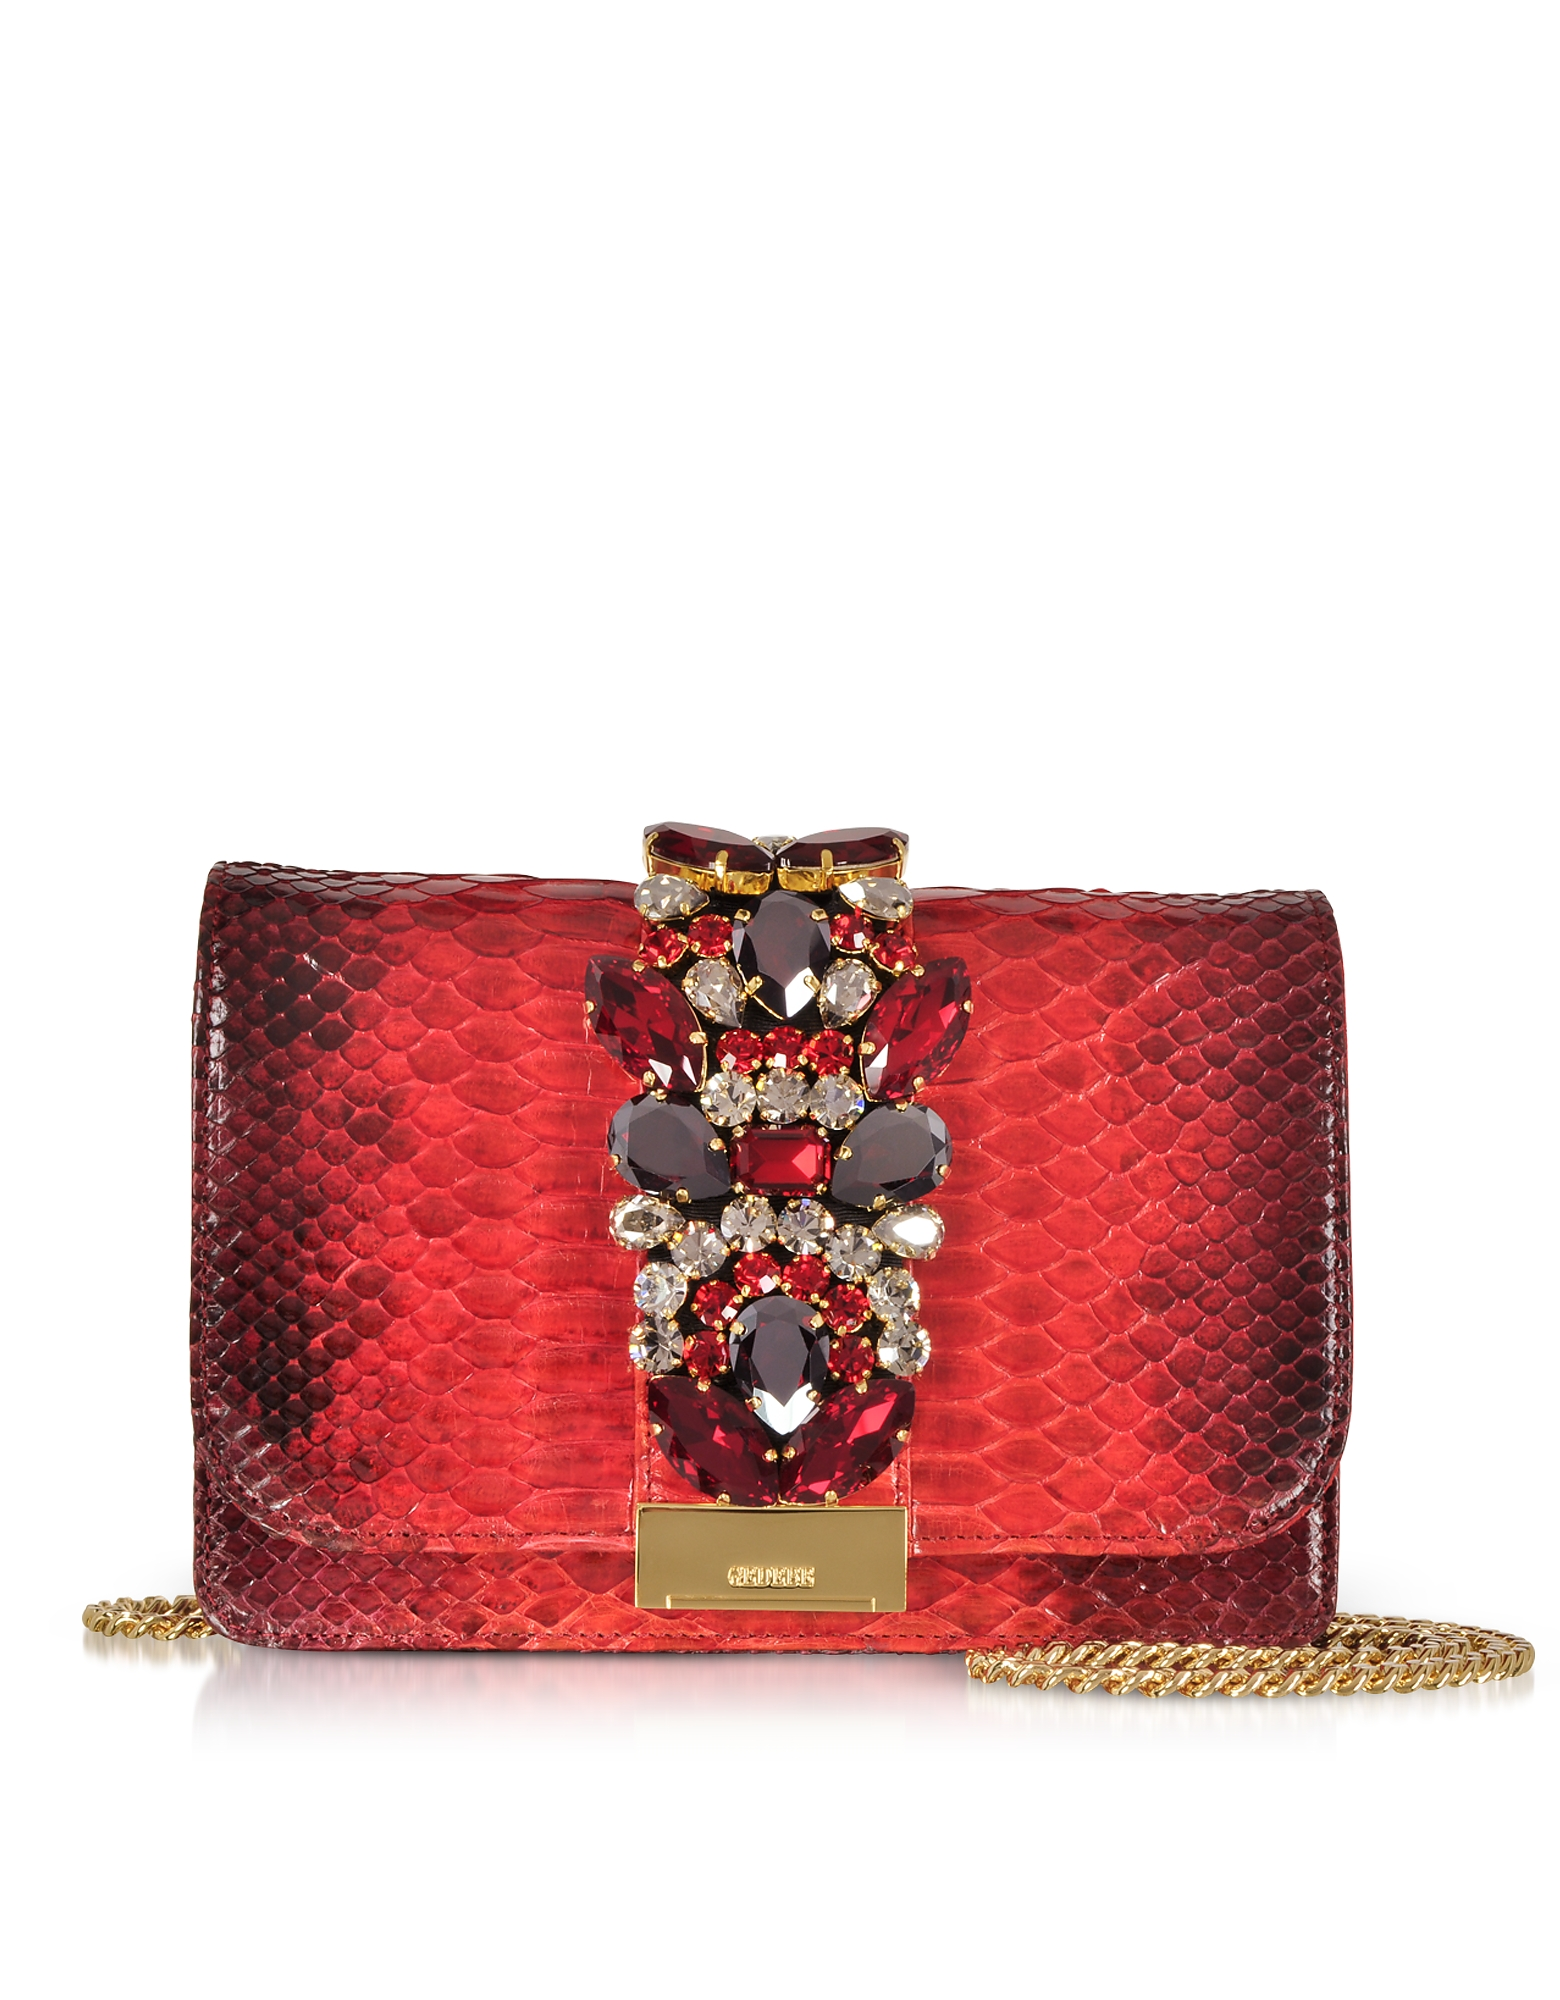 Cliky Red Shadow Python Clutch w/Crystals and Chain Strap